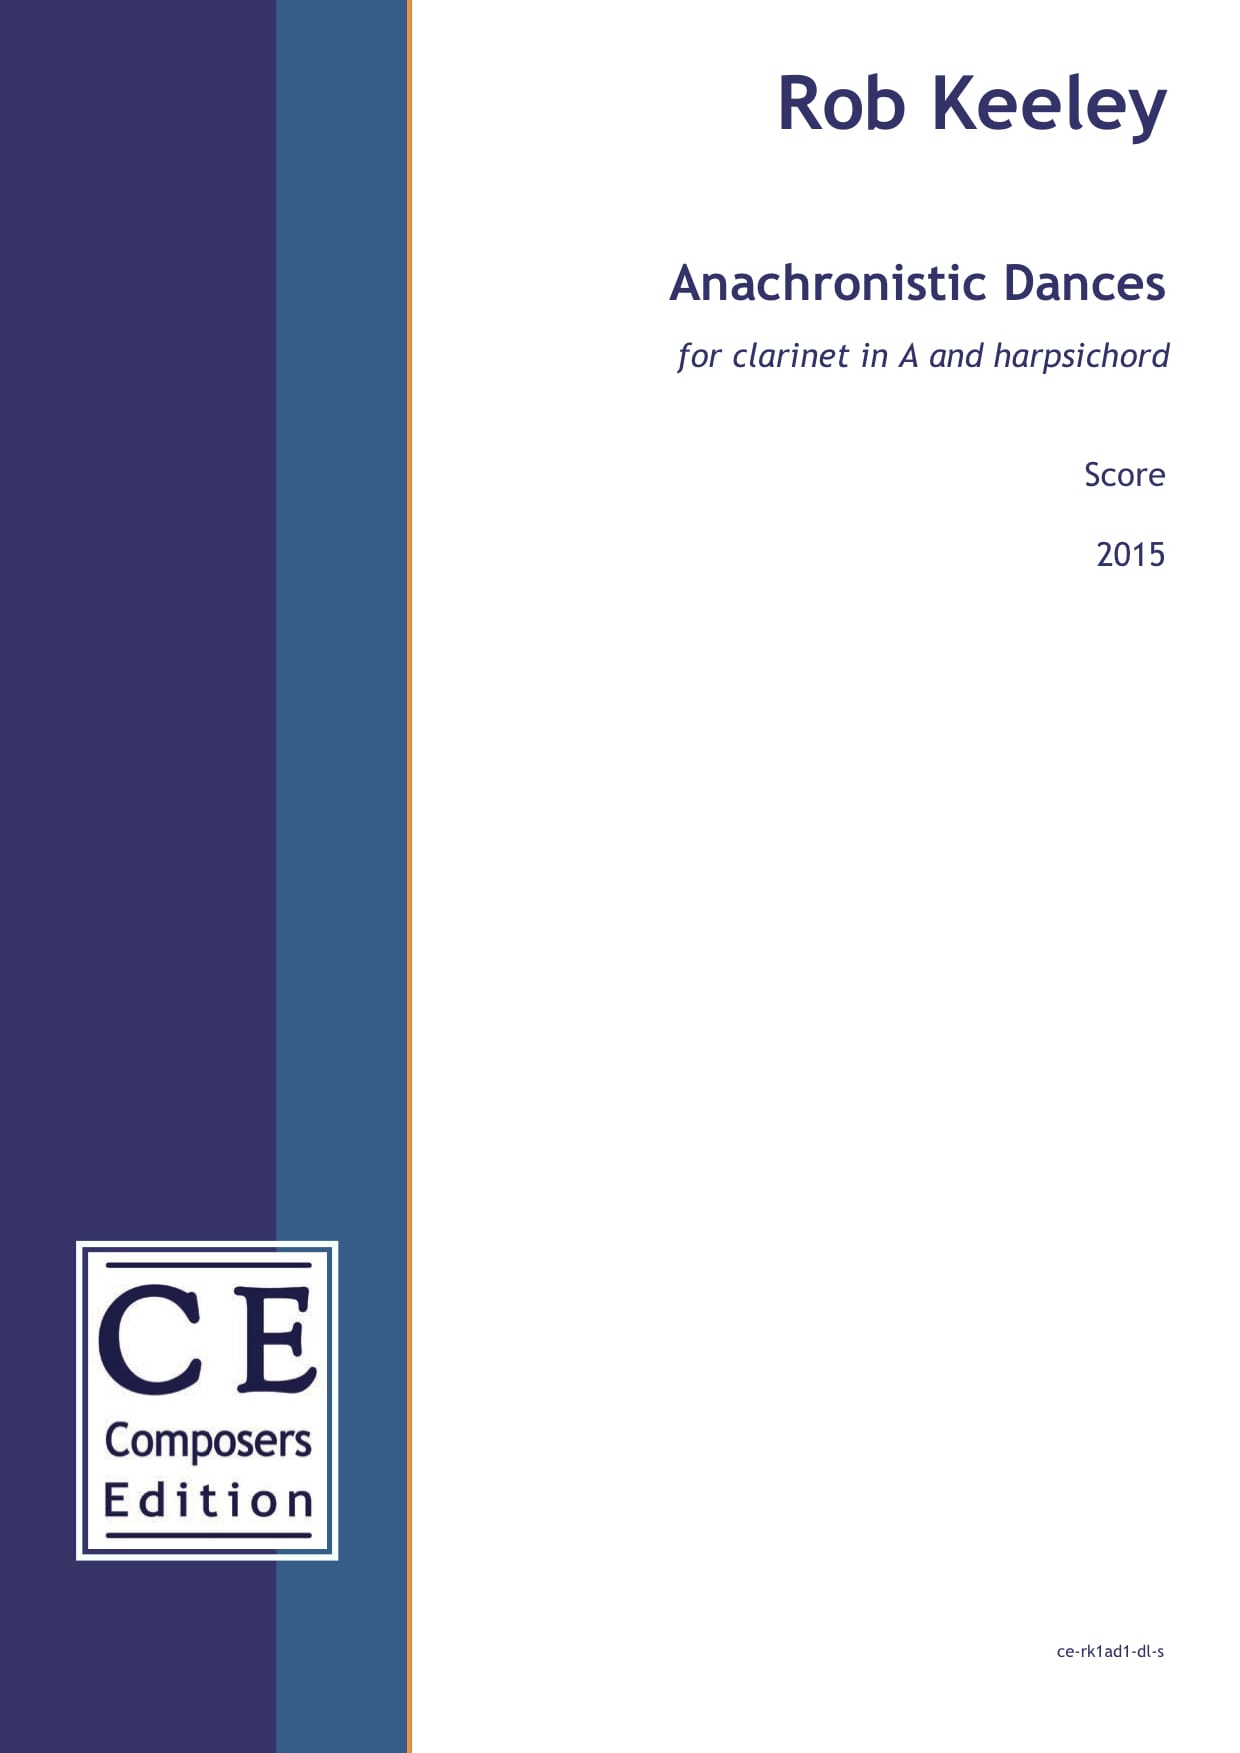 Rob Keeley: Anachronistic Dances for clarinet in A and harpsichord